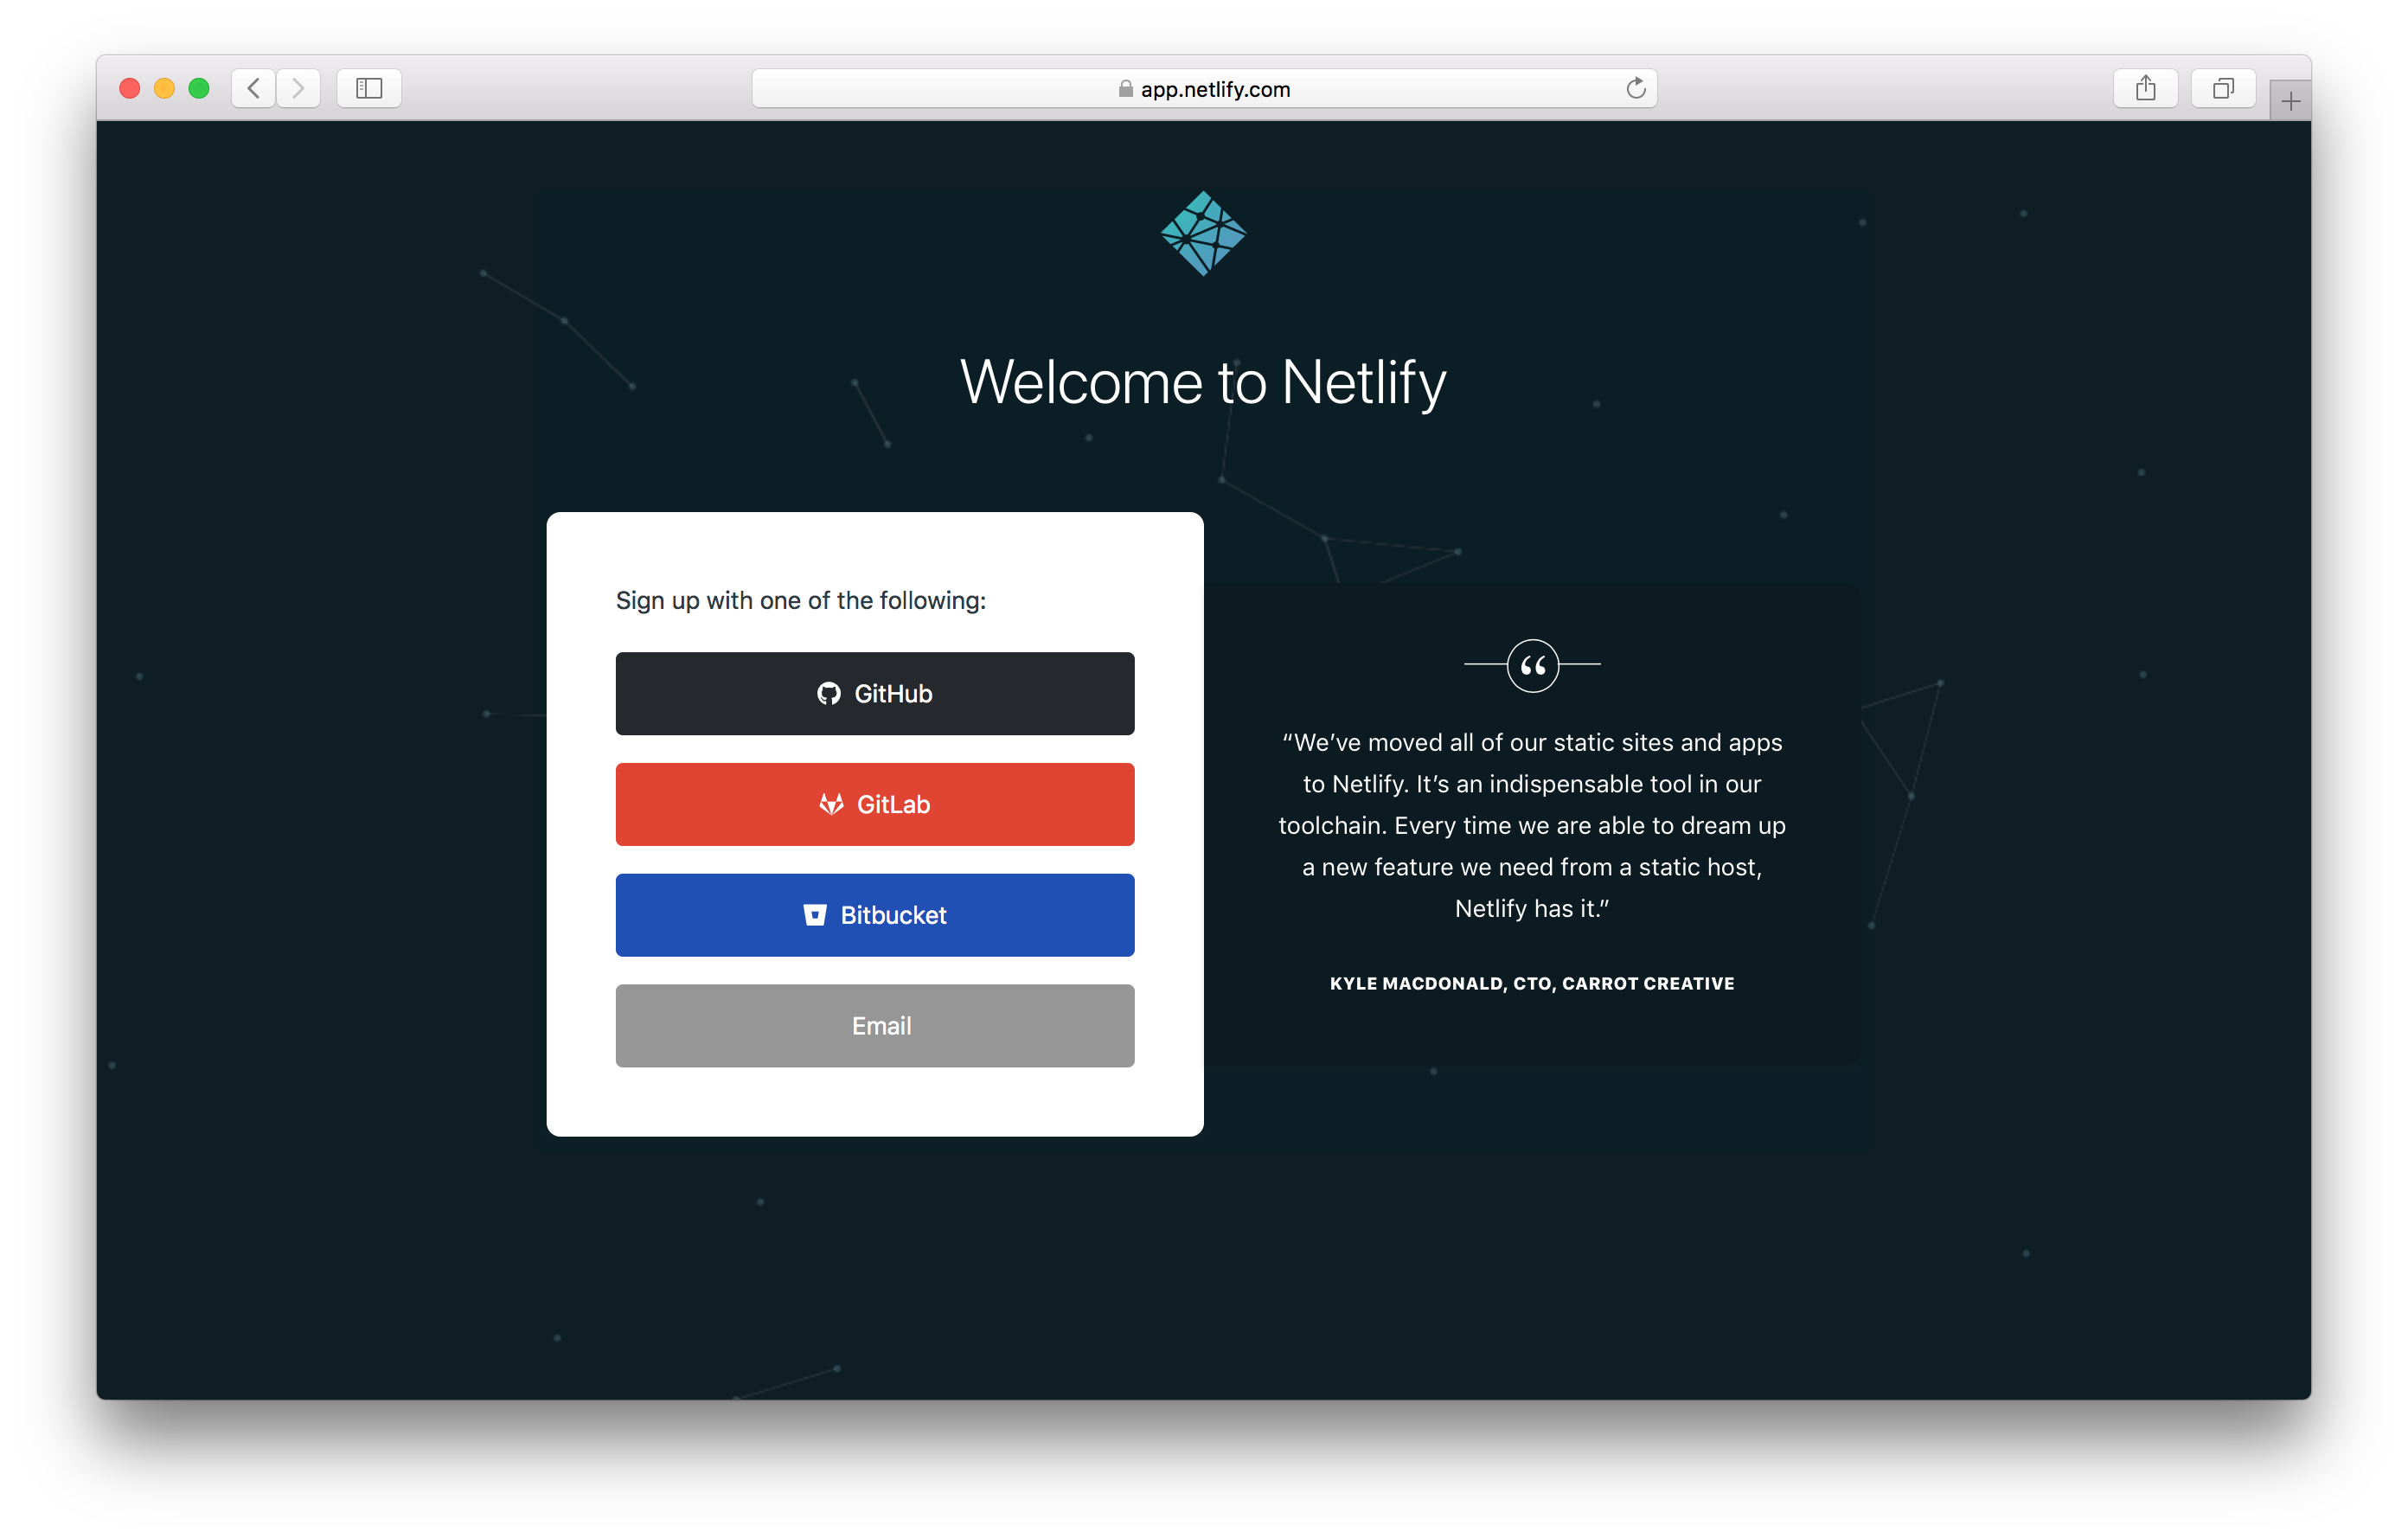 Signup for Netlify screenshot